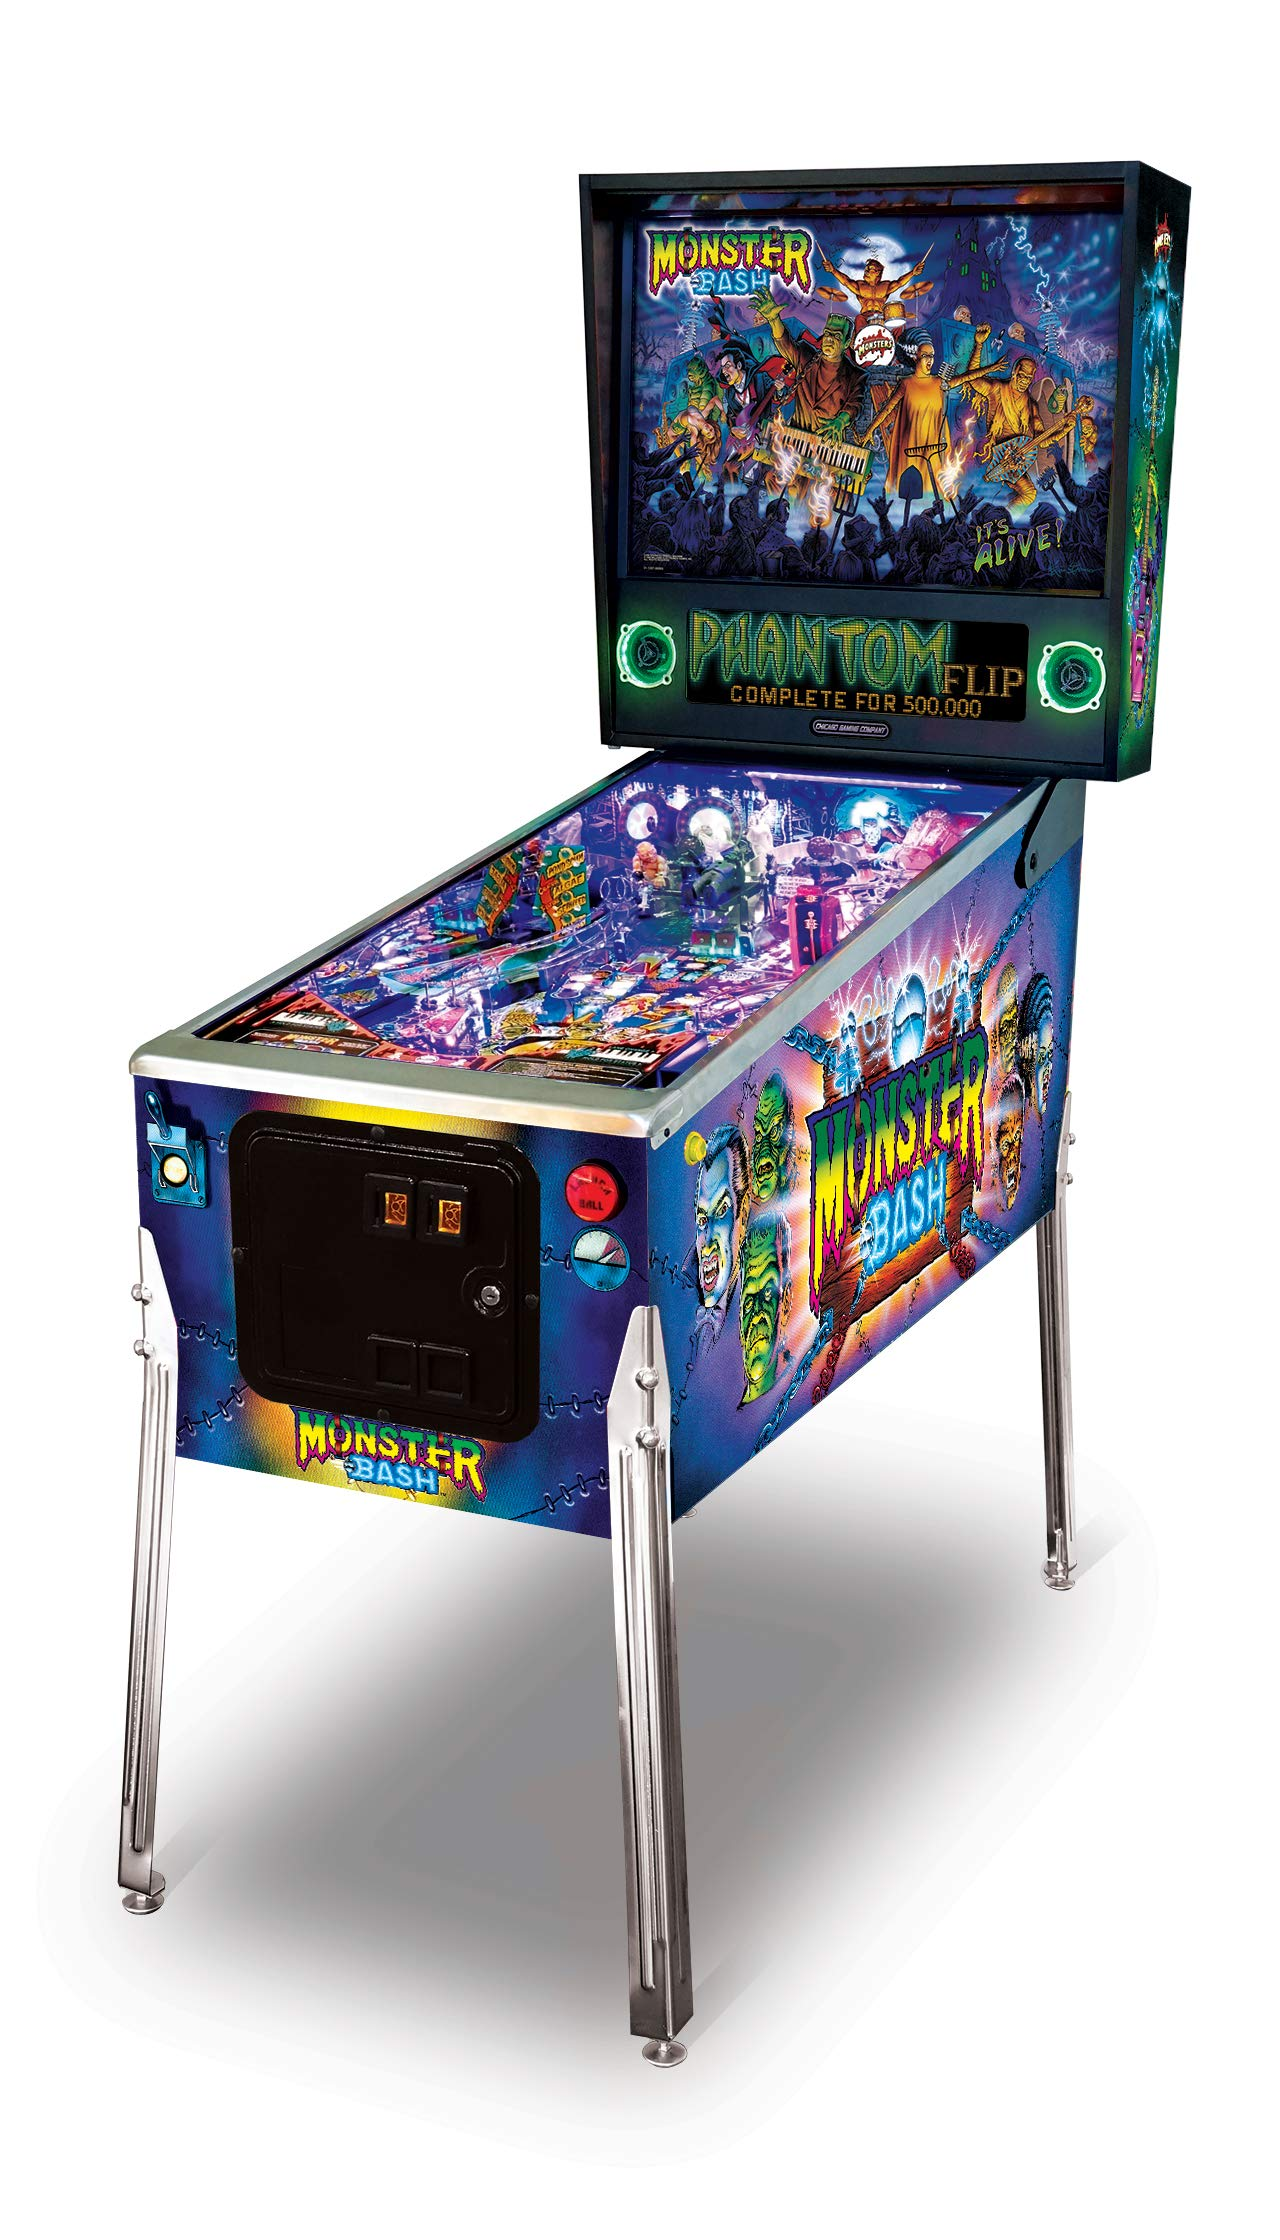 Monster Bash SE by Chicago Gaming